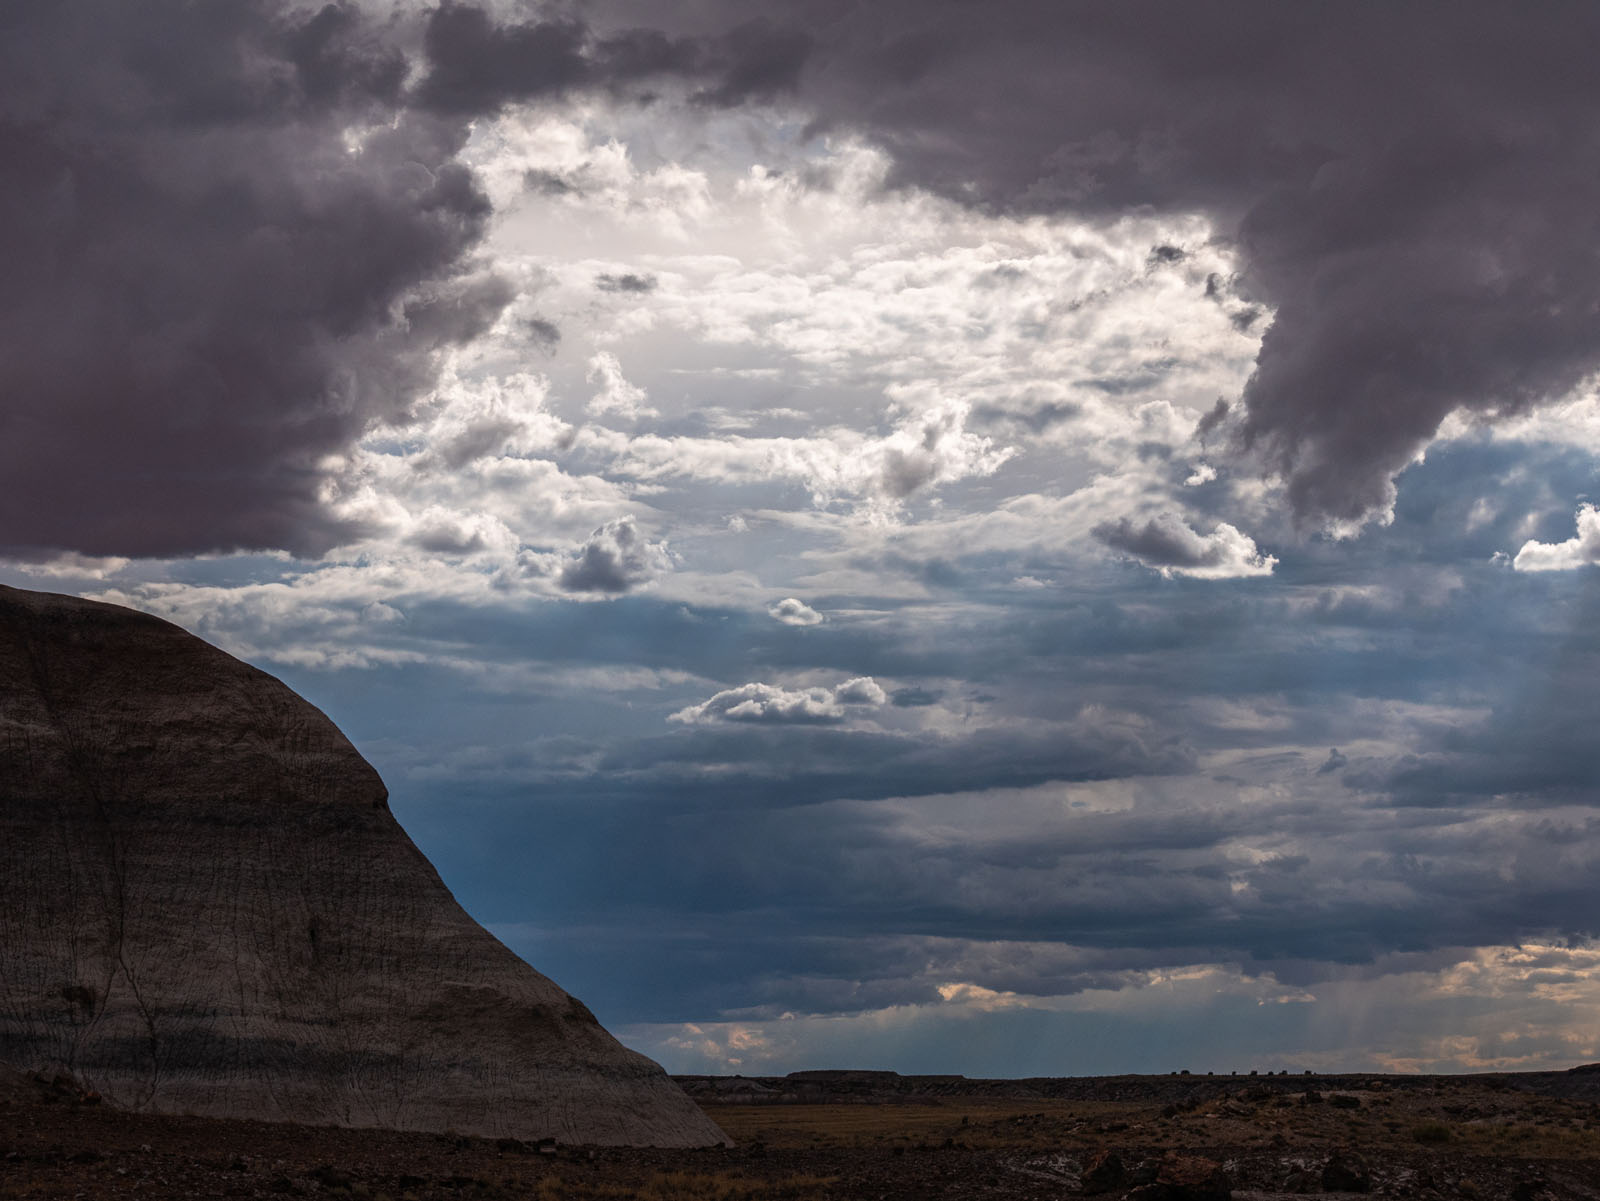 CO_Vacationmoon_PaintedDesert-1010527.jpg